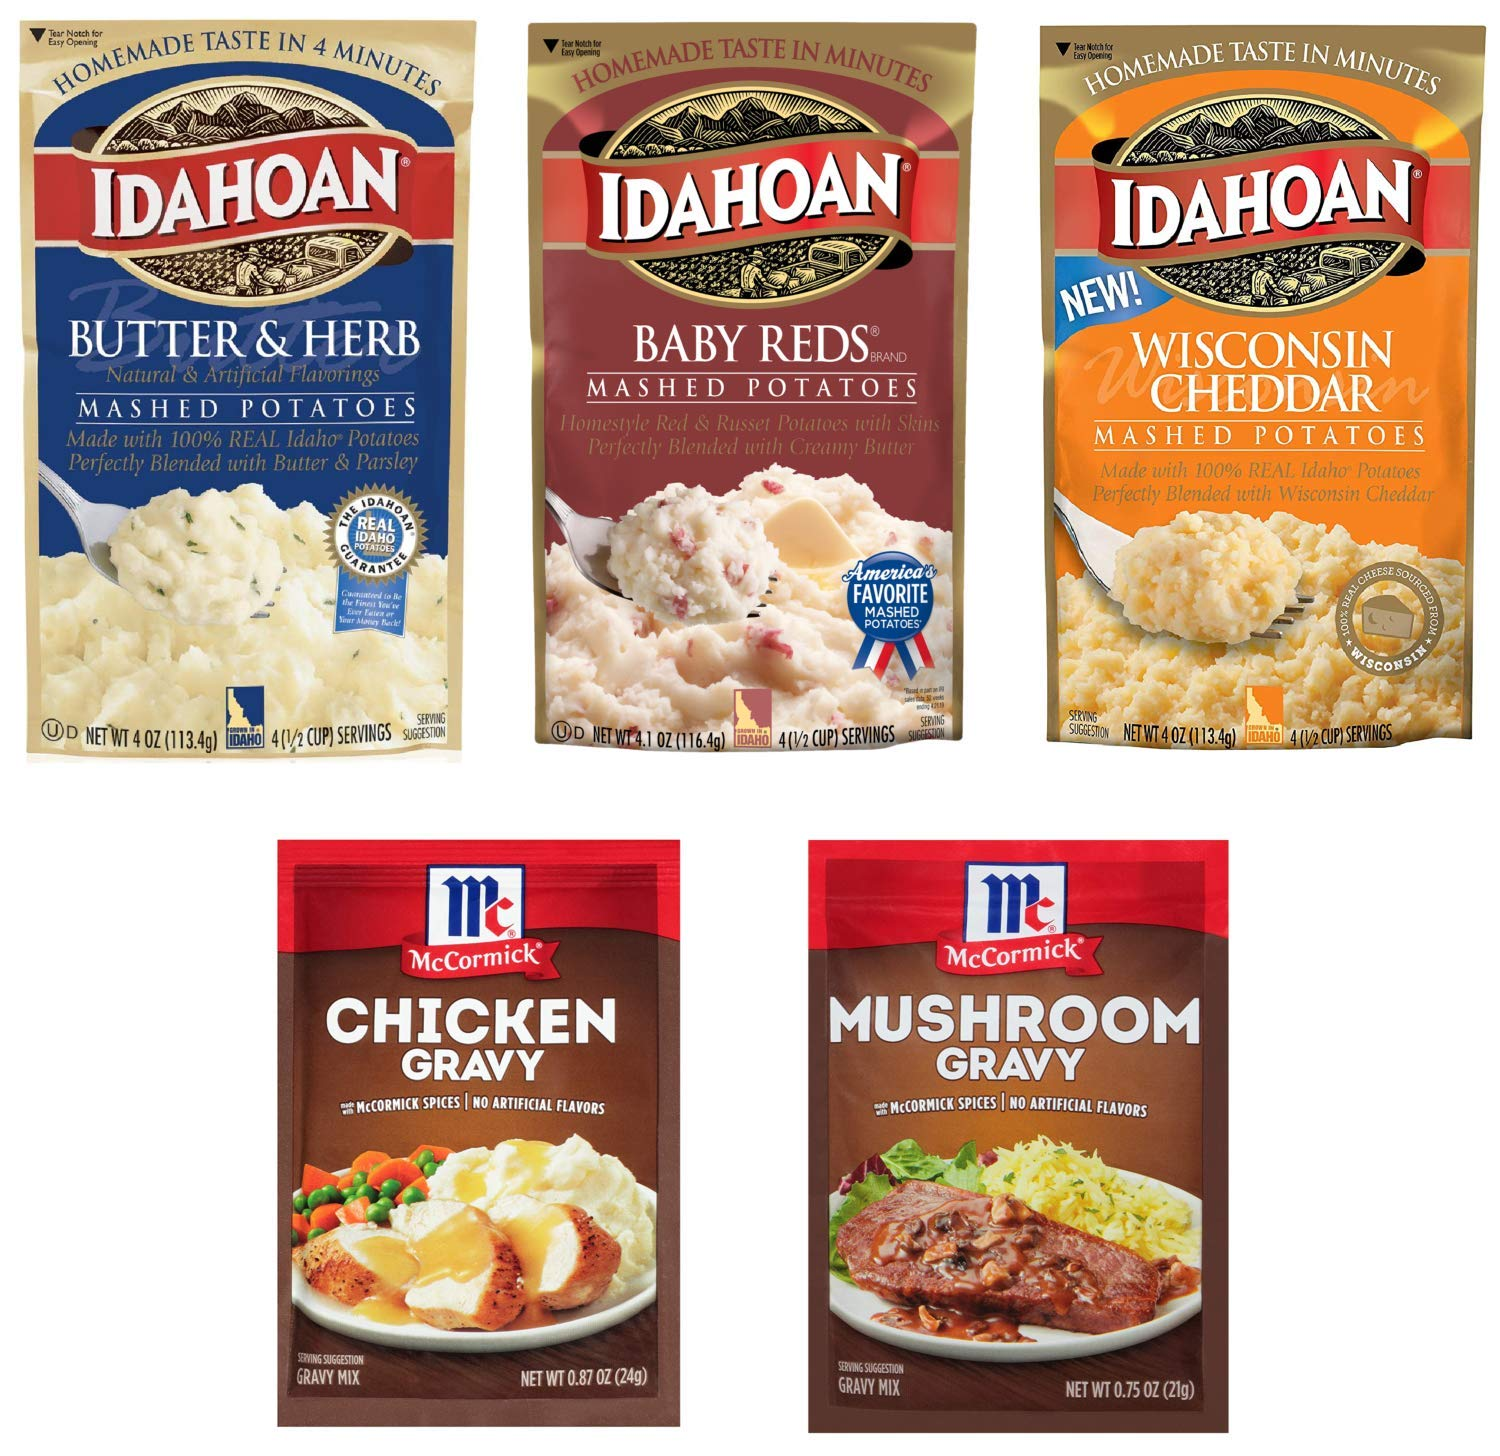 Idahoan Instant Mashed Potatoes Variety (4 oz x 3 pack) and McCormick Gravy Mix Packets (0.87 oz x 2 pack) - 5 pc Bundle (Butter Herb, BabyRed, Wisconsin & Chicken Mushroom)